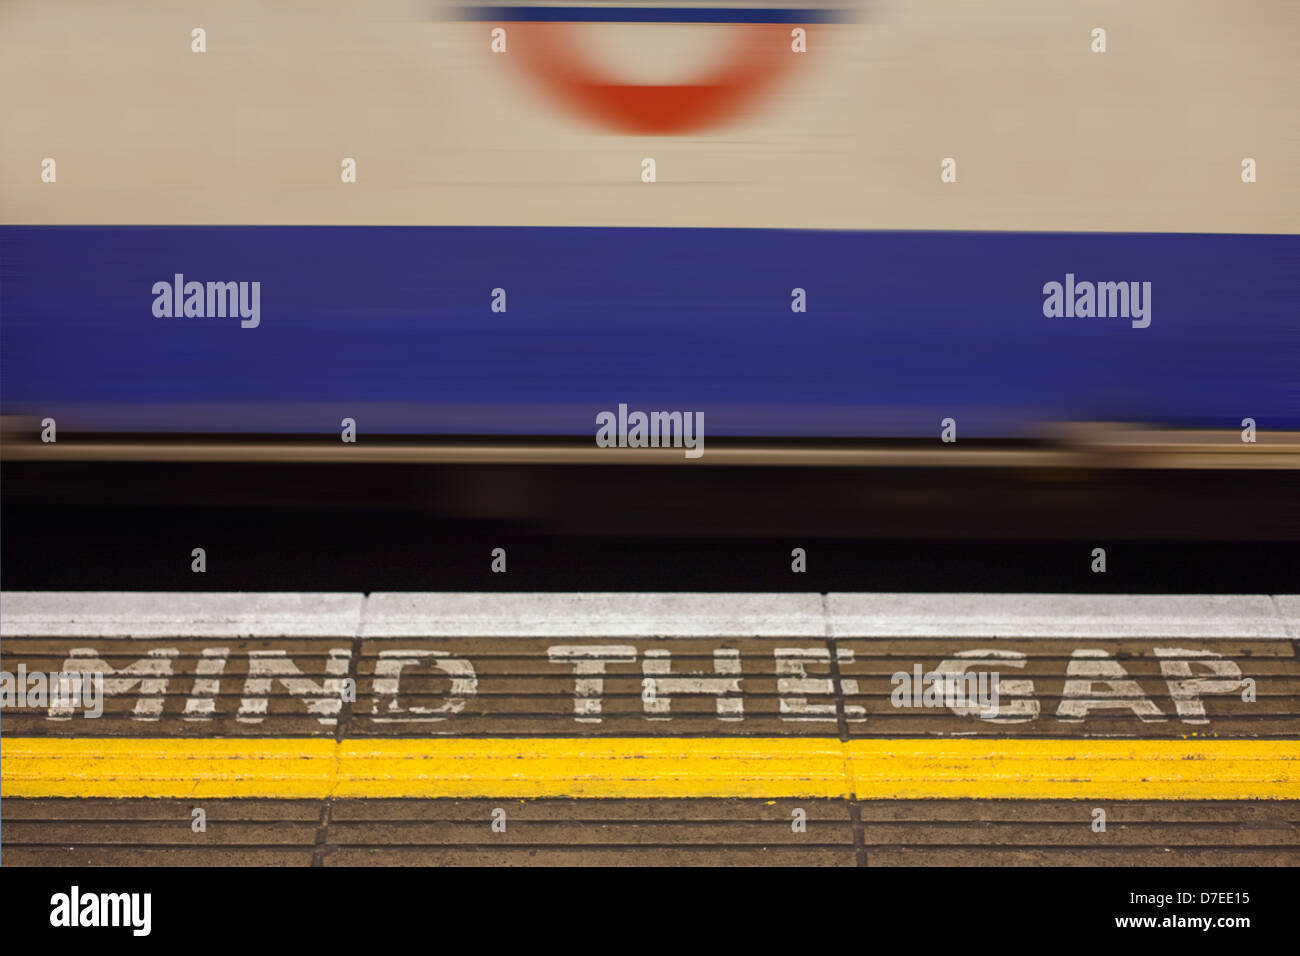 Bank underground station 'Mind the Gap' sign painted on the station platform with fast moving tube train - Stock Image